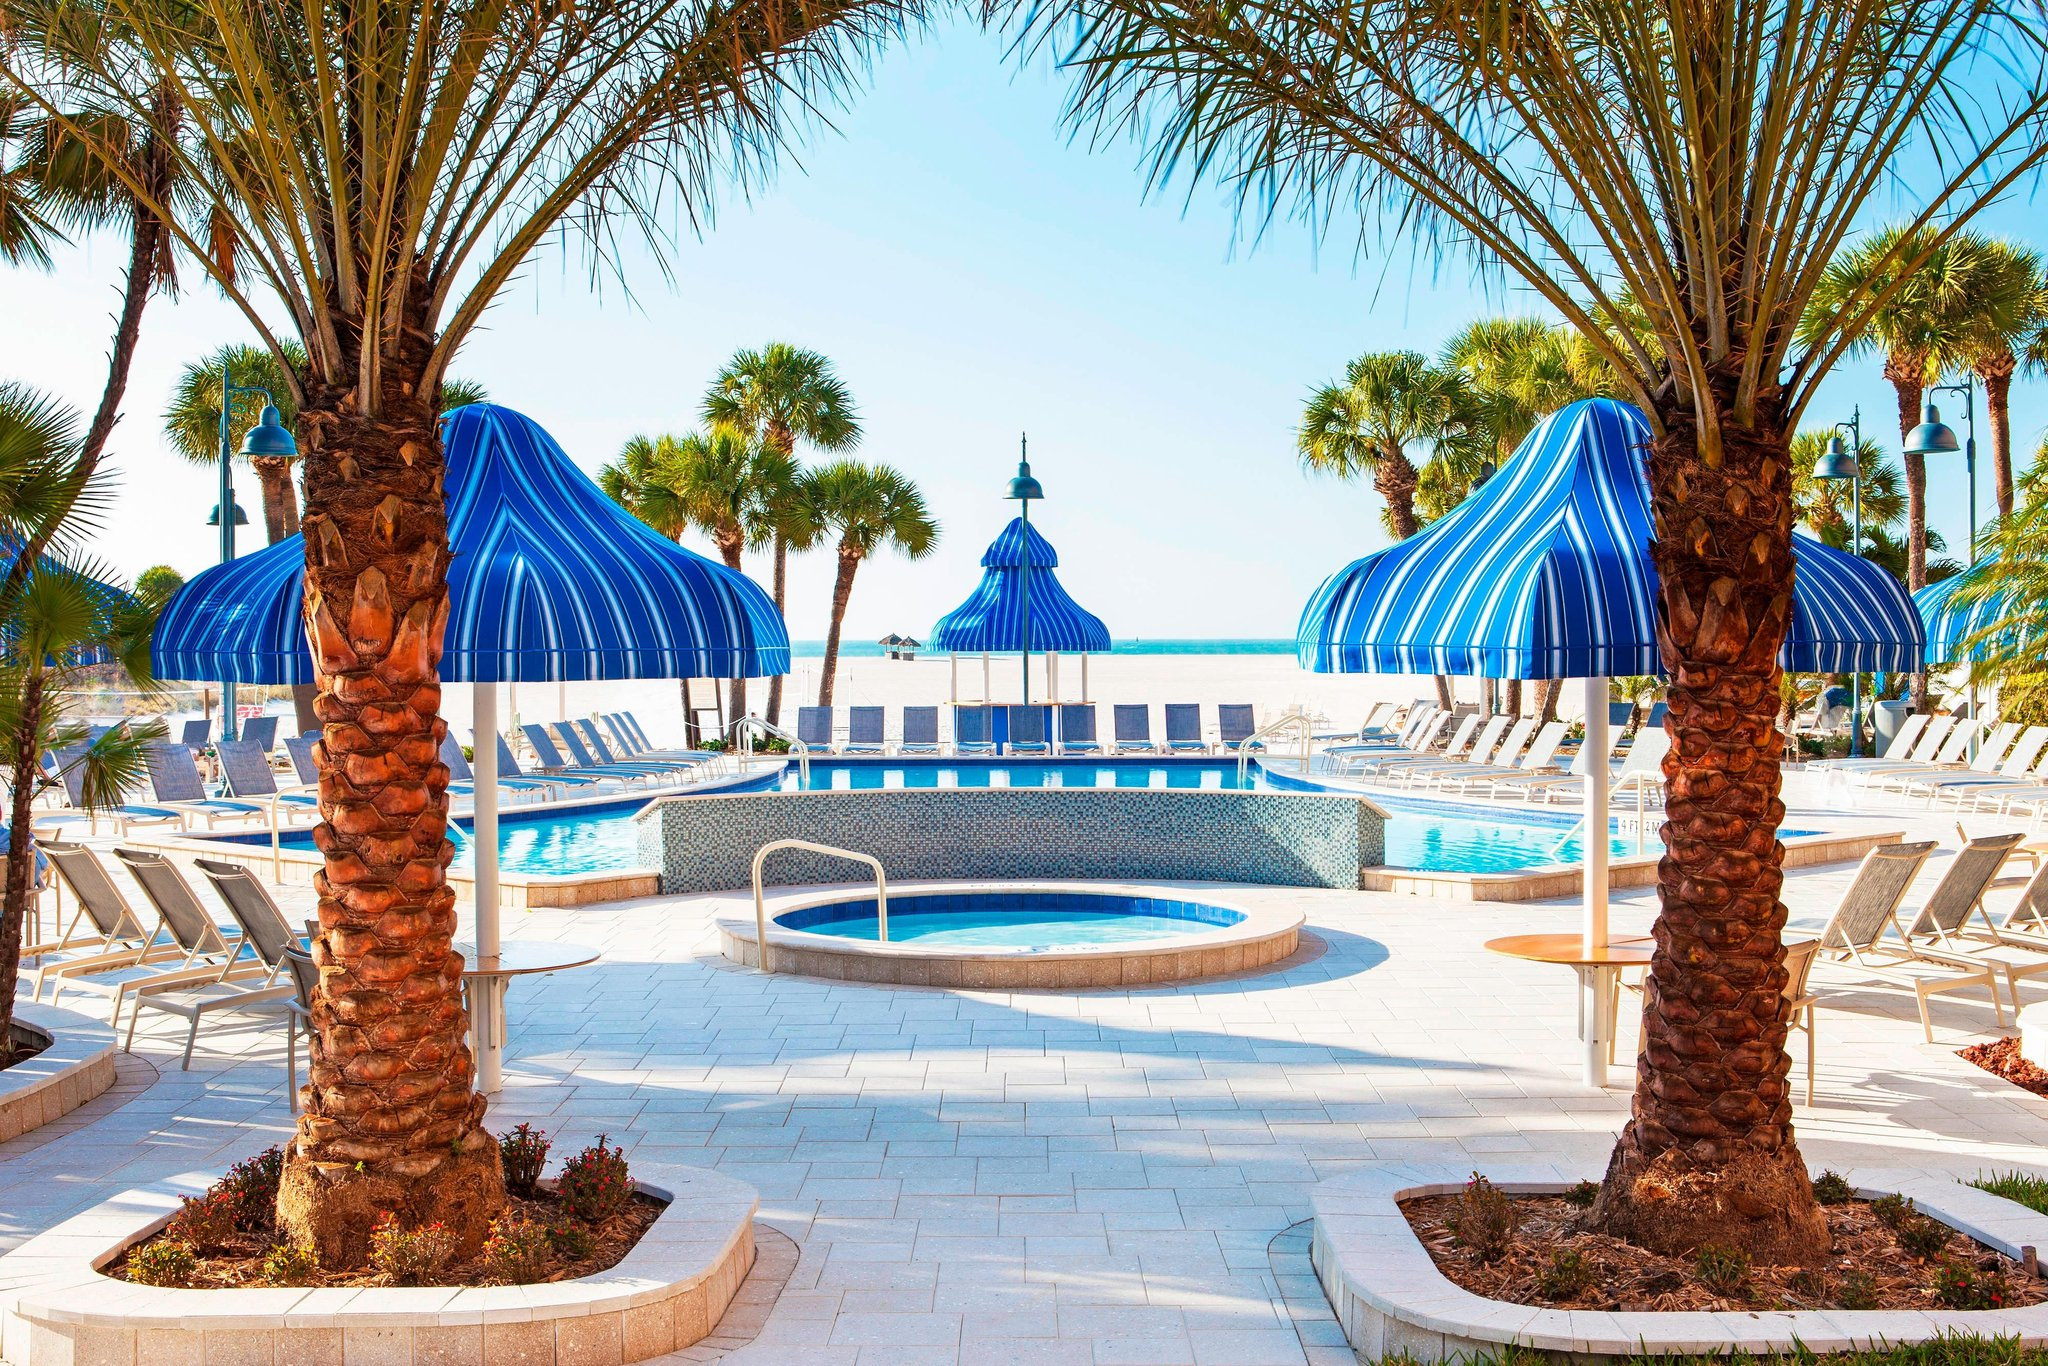 Meetings and events at Sheraton Sand Key Resort, Clearwater